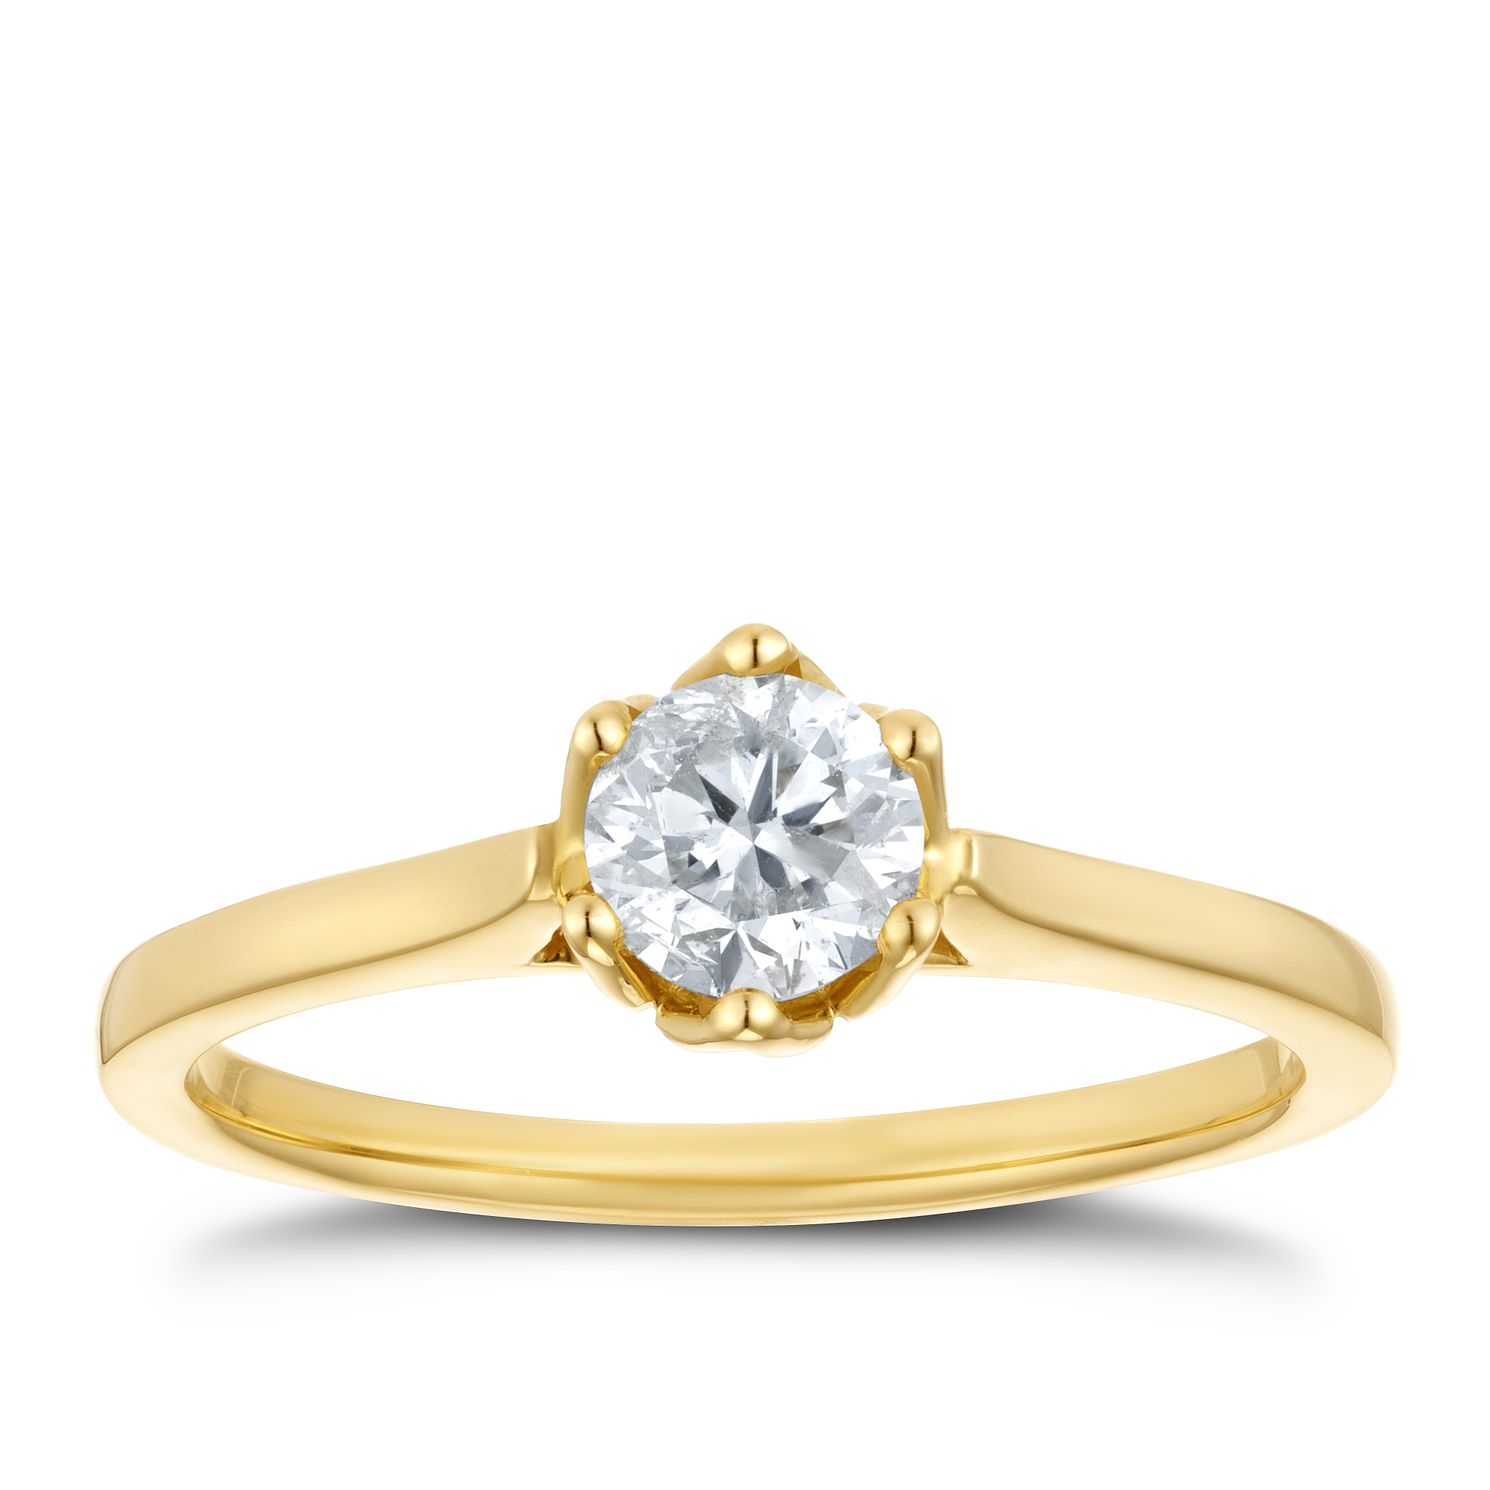 18ct Yellow Gold 1/2ct Diamond Solitaire Ring - Product number 4234456